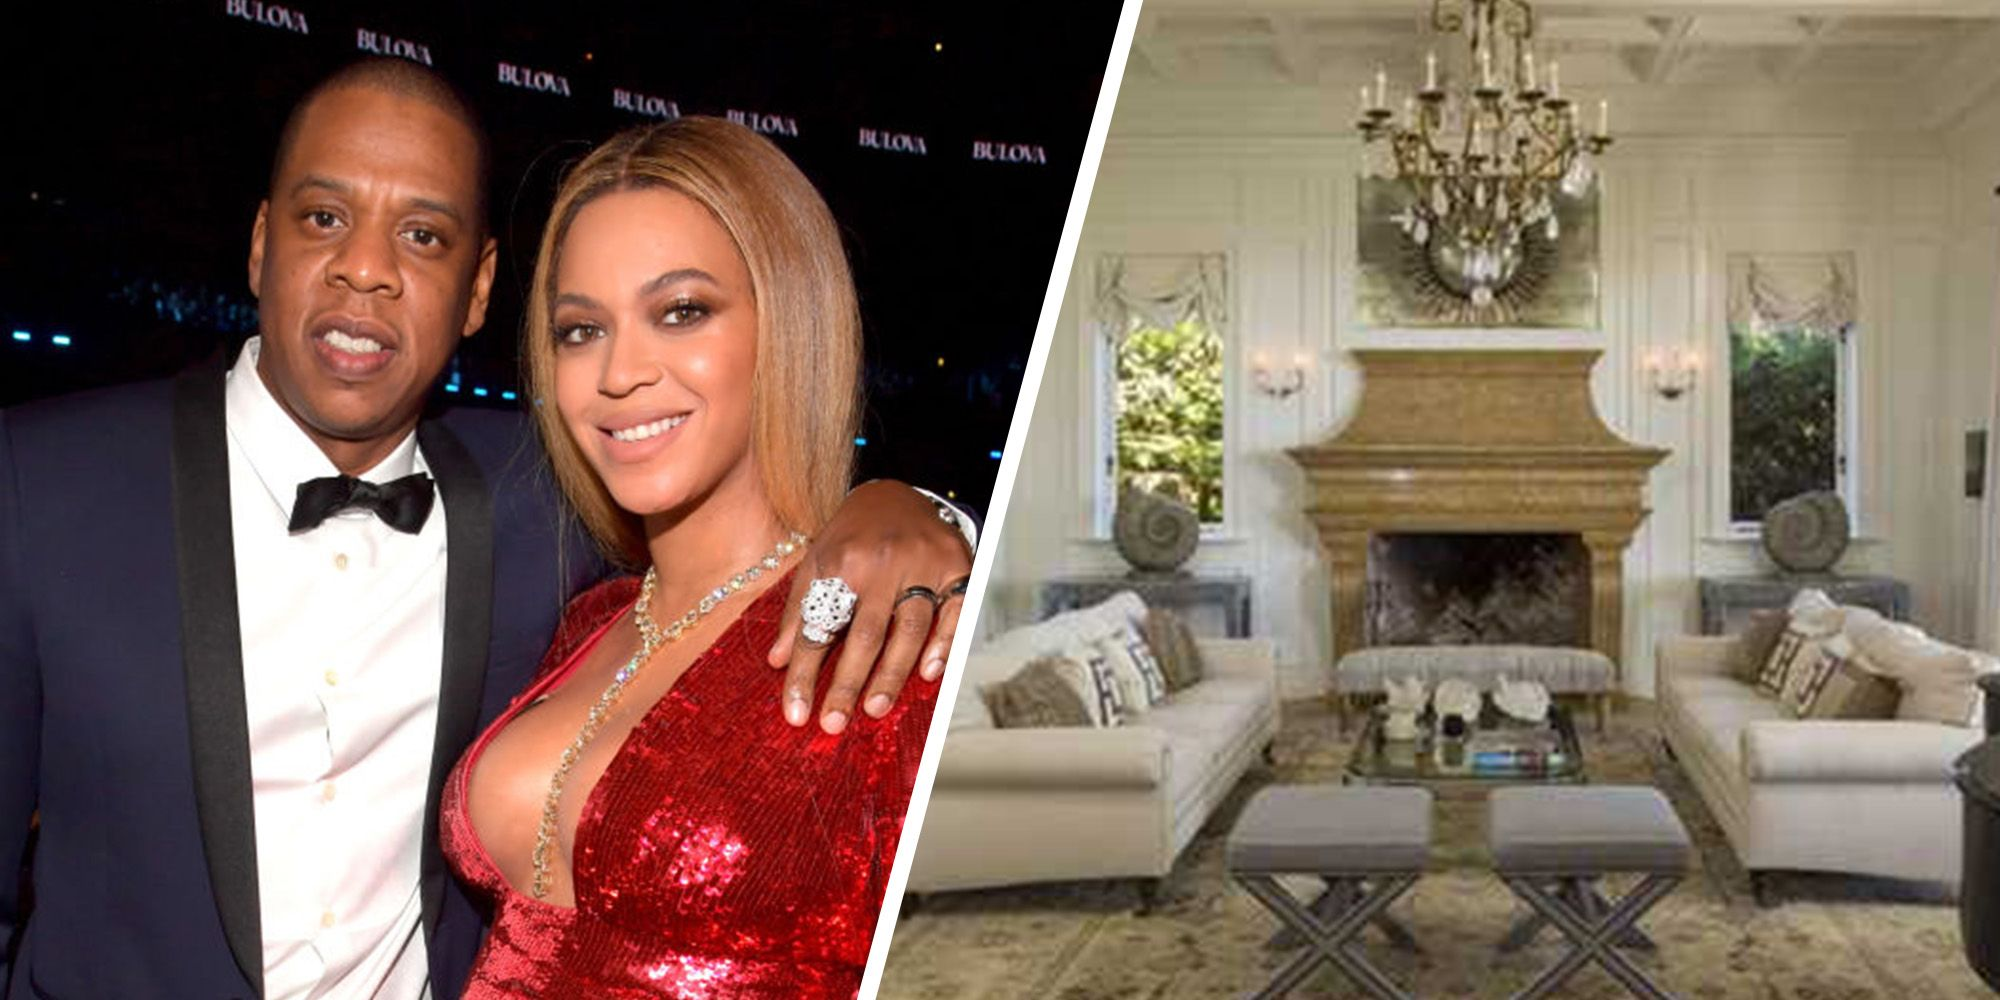 Apartment Renovation Ideas Beyoncé And Jay Z Bring The Twins Home To A $400k Per